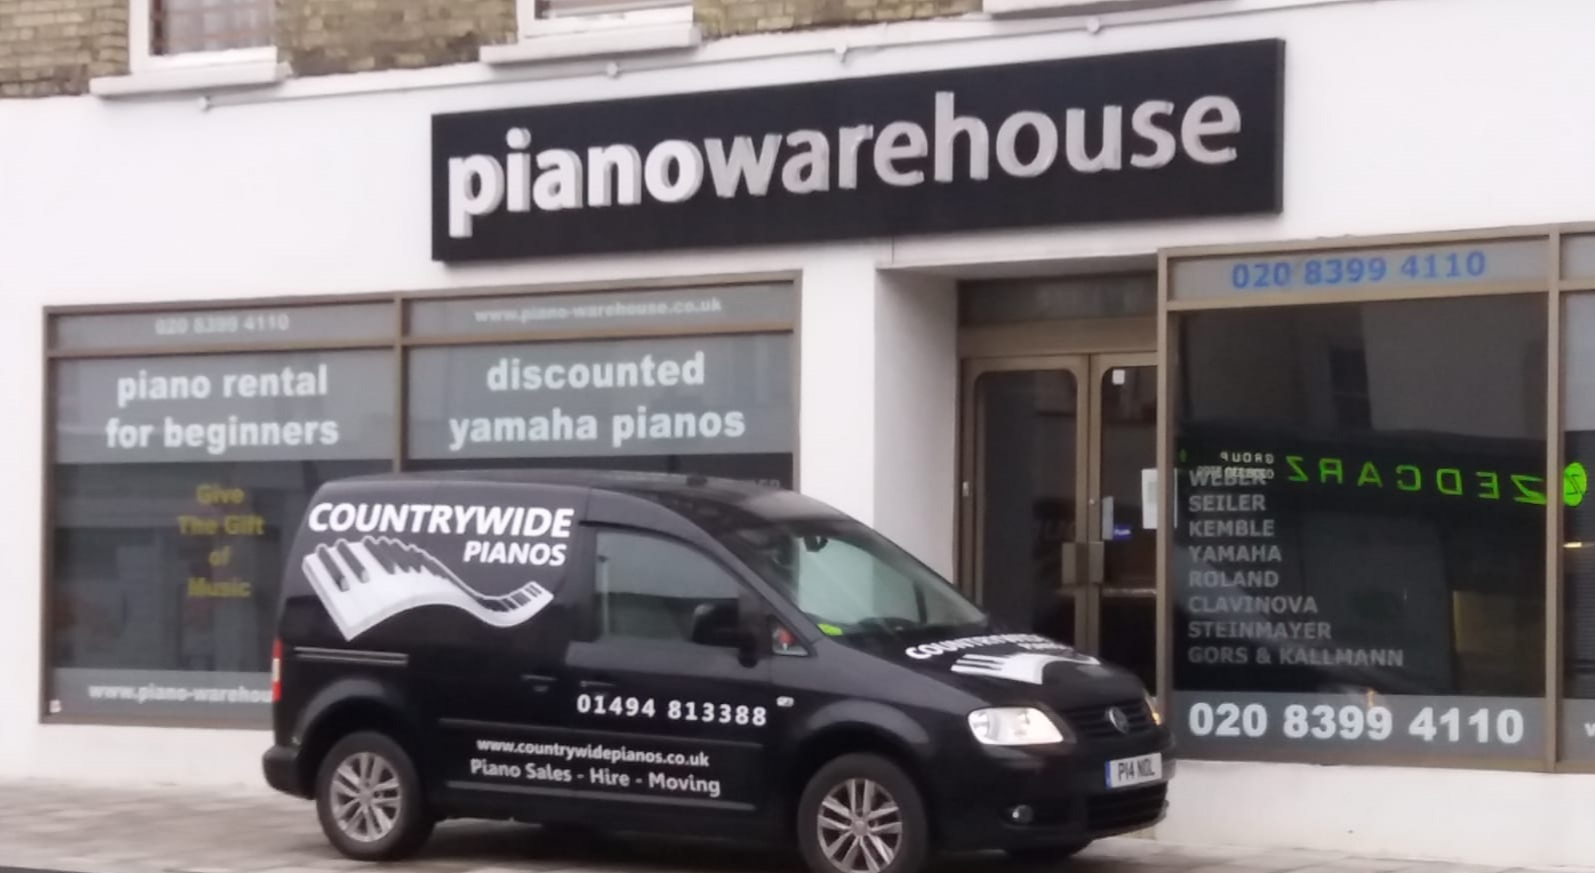 Countrywide Pianos at Piano Warehouse